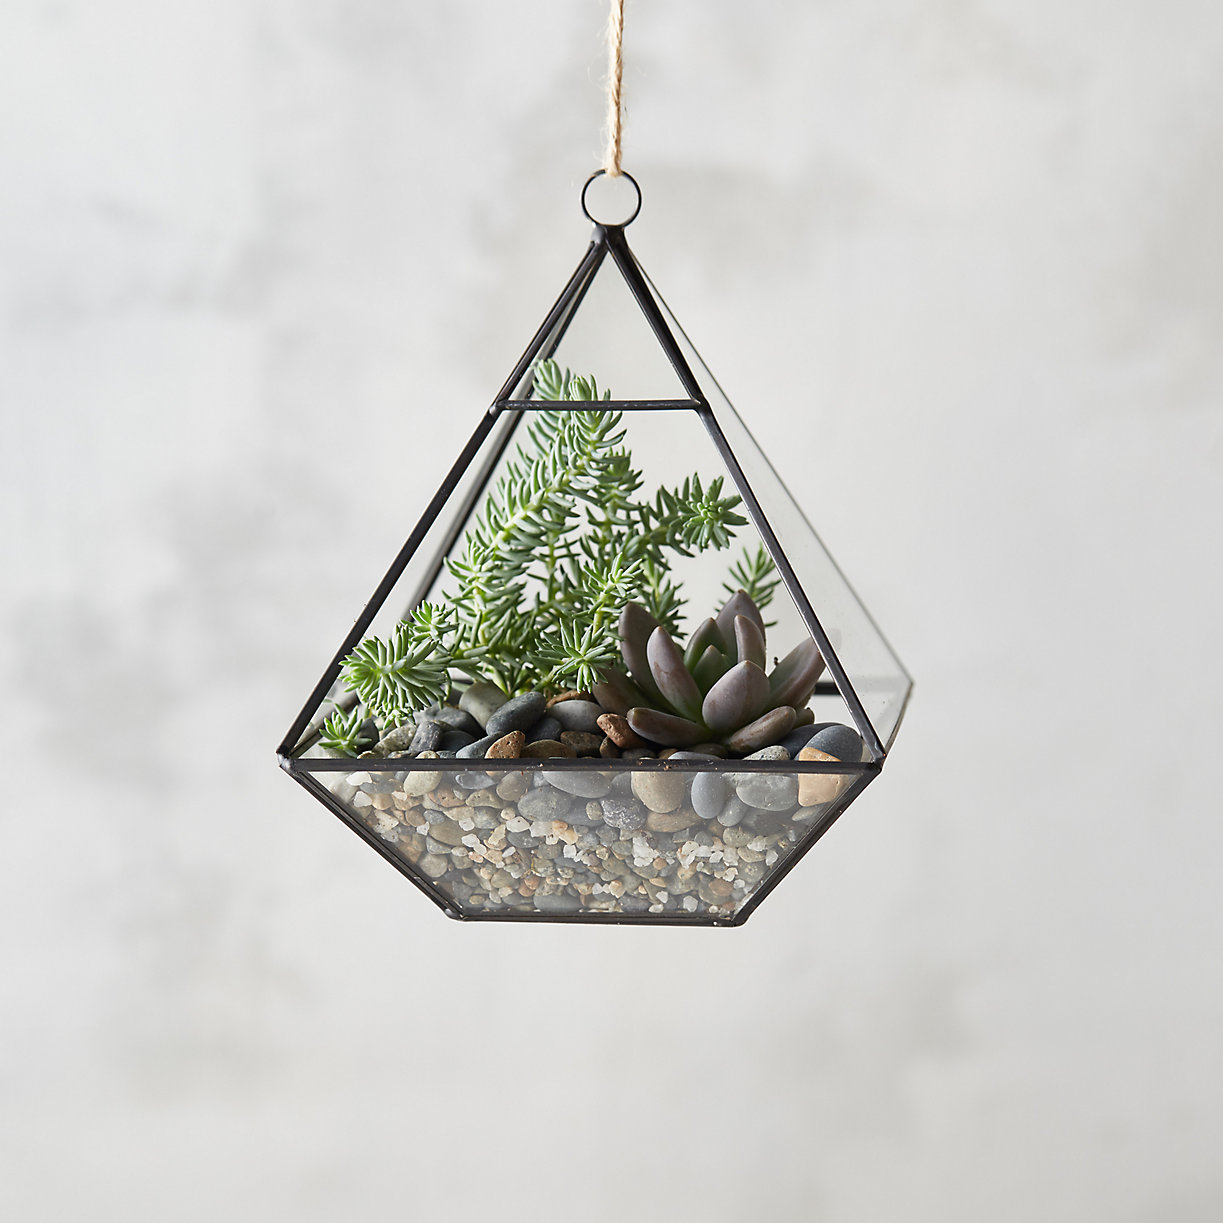 Framed Pyramid Hanging Terrarium Feng Shui Cures Decor Accents